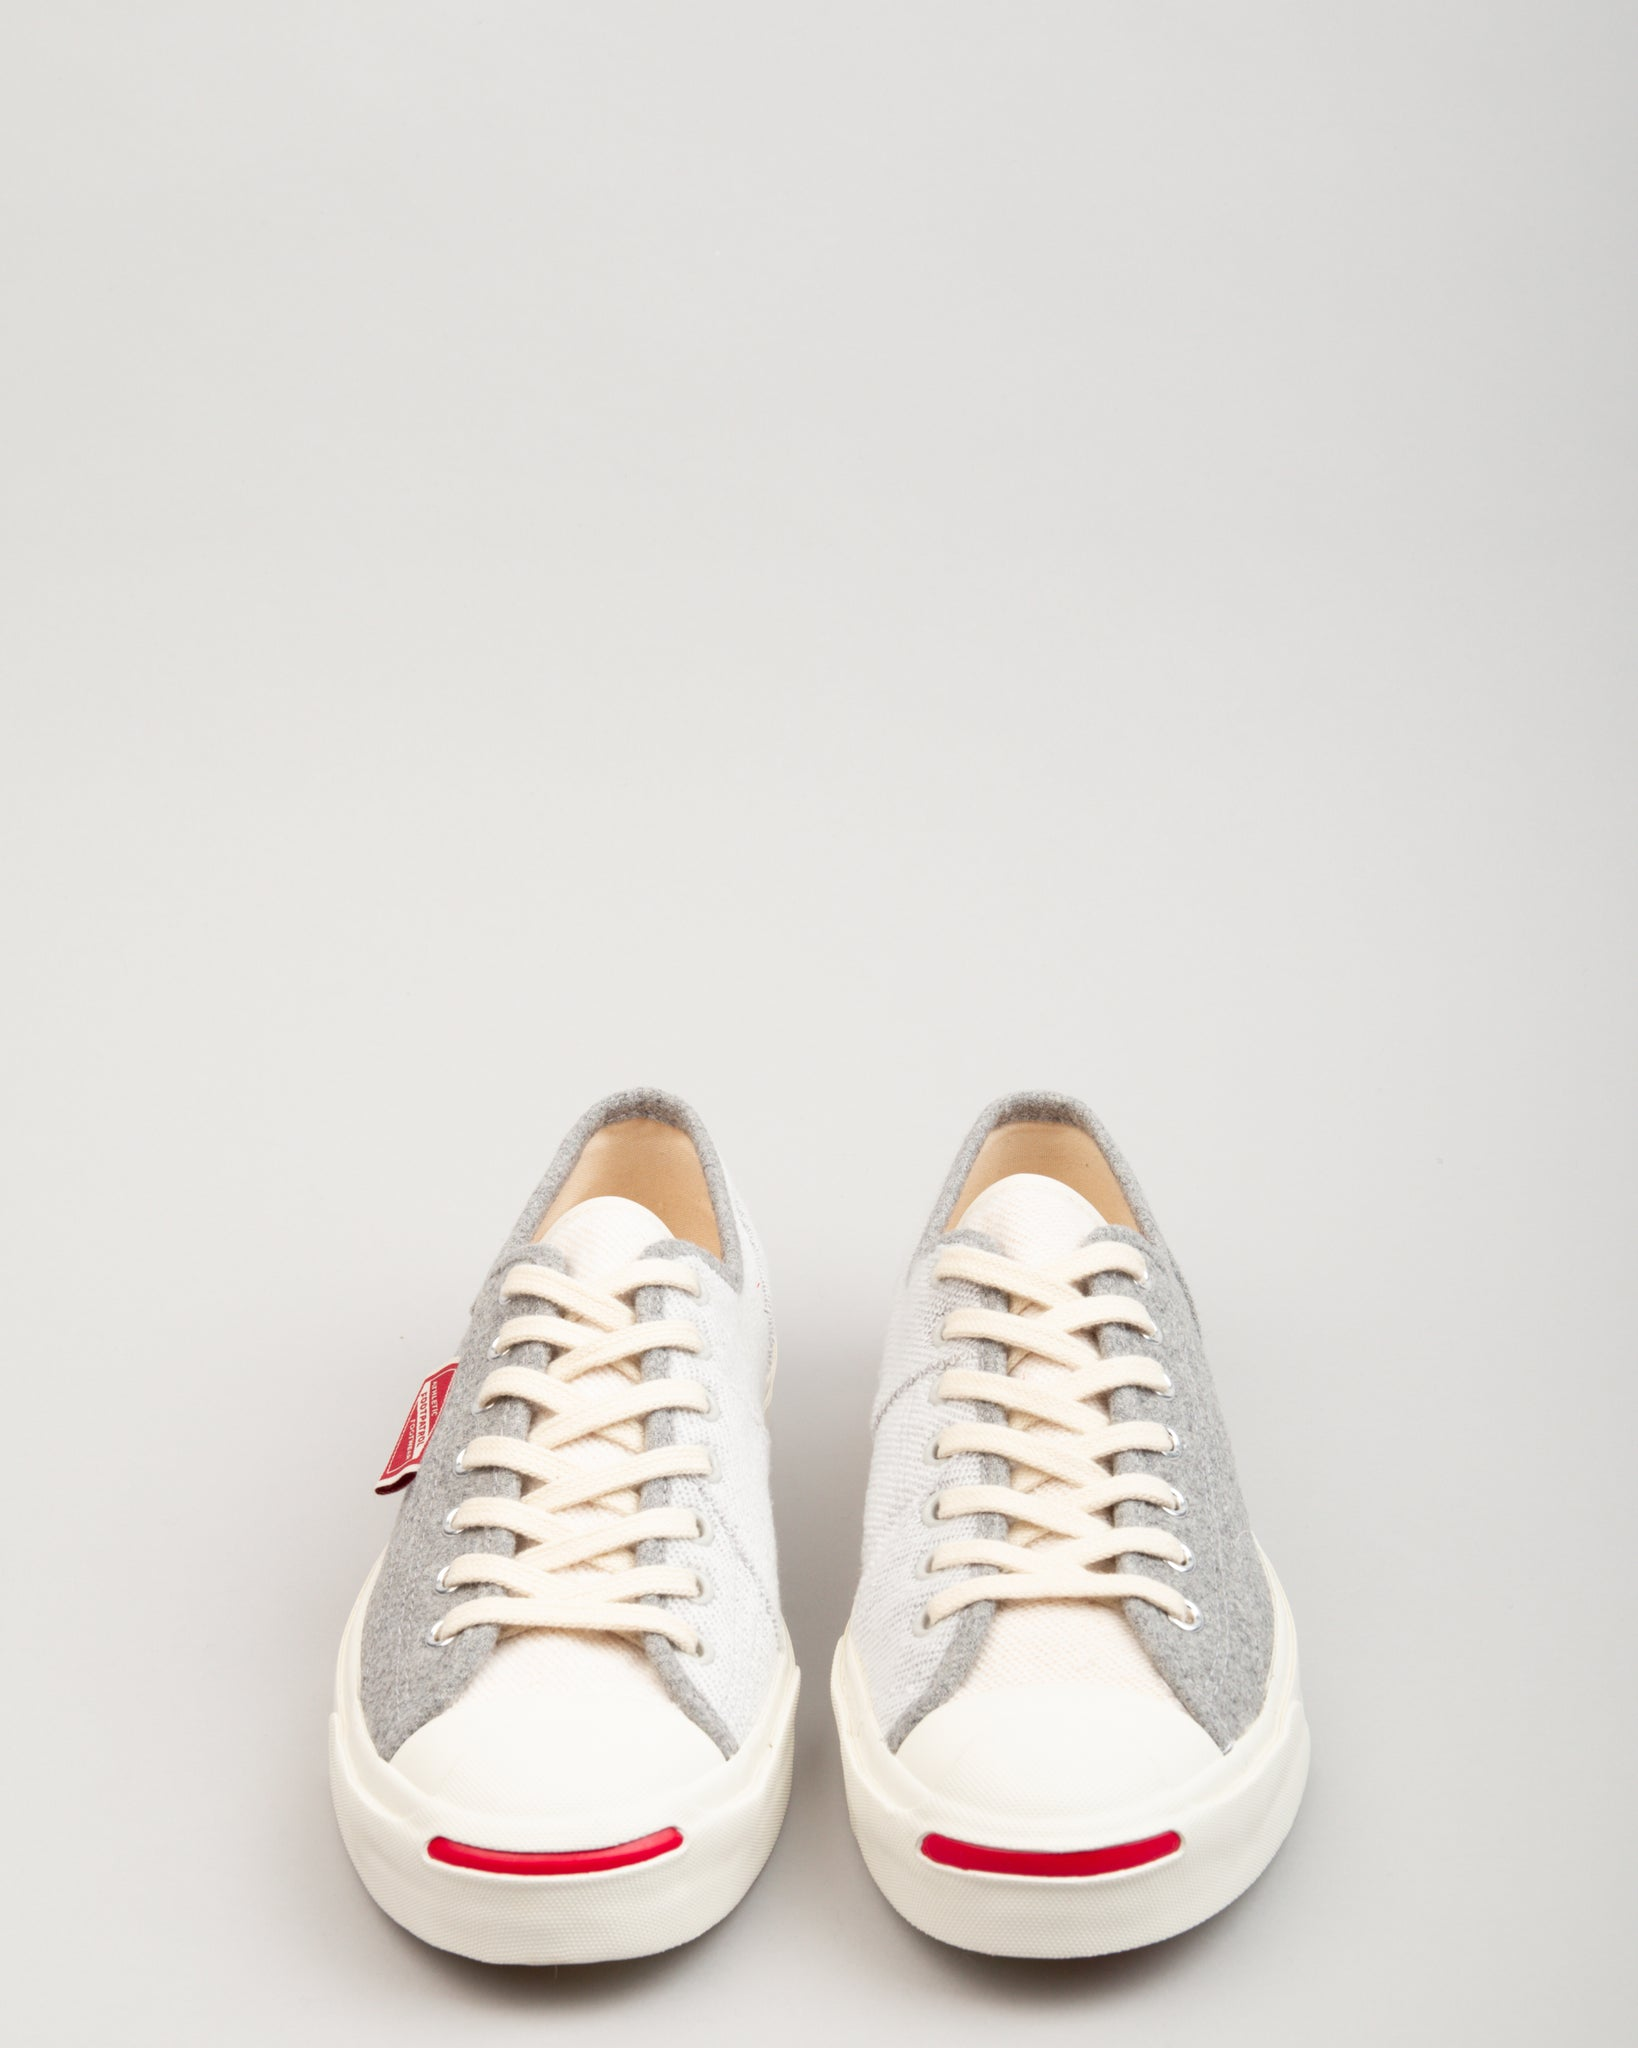 Footpatrol Jack Purcell OX Vapor Blue/Steel Frey